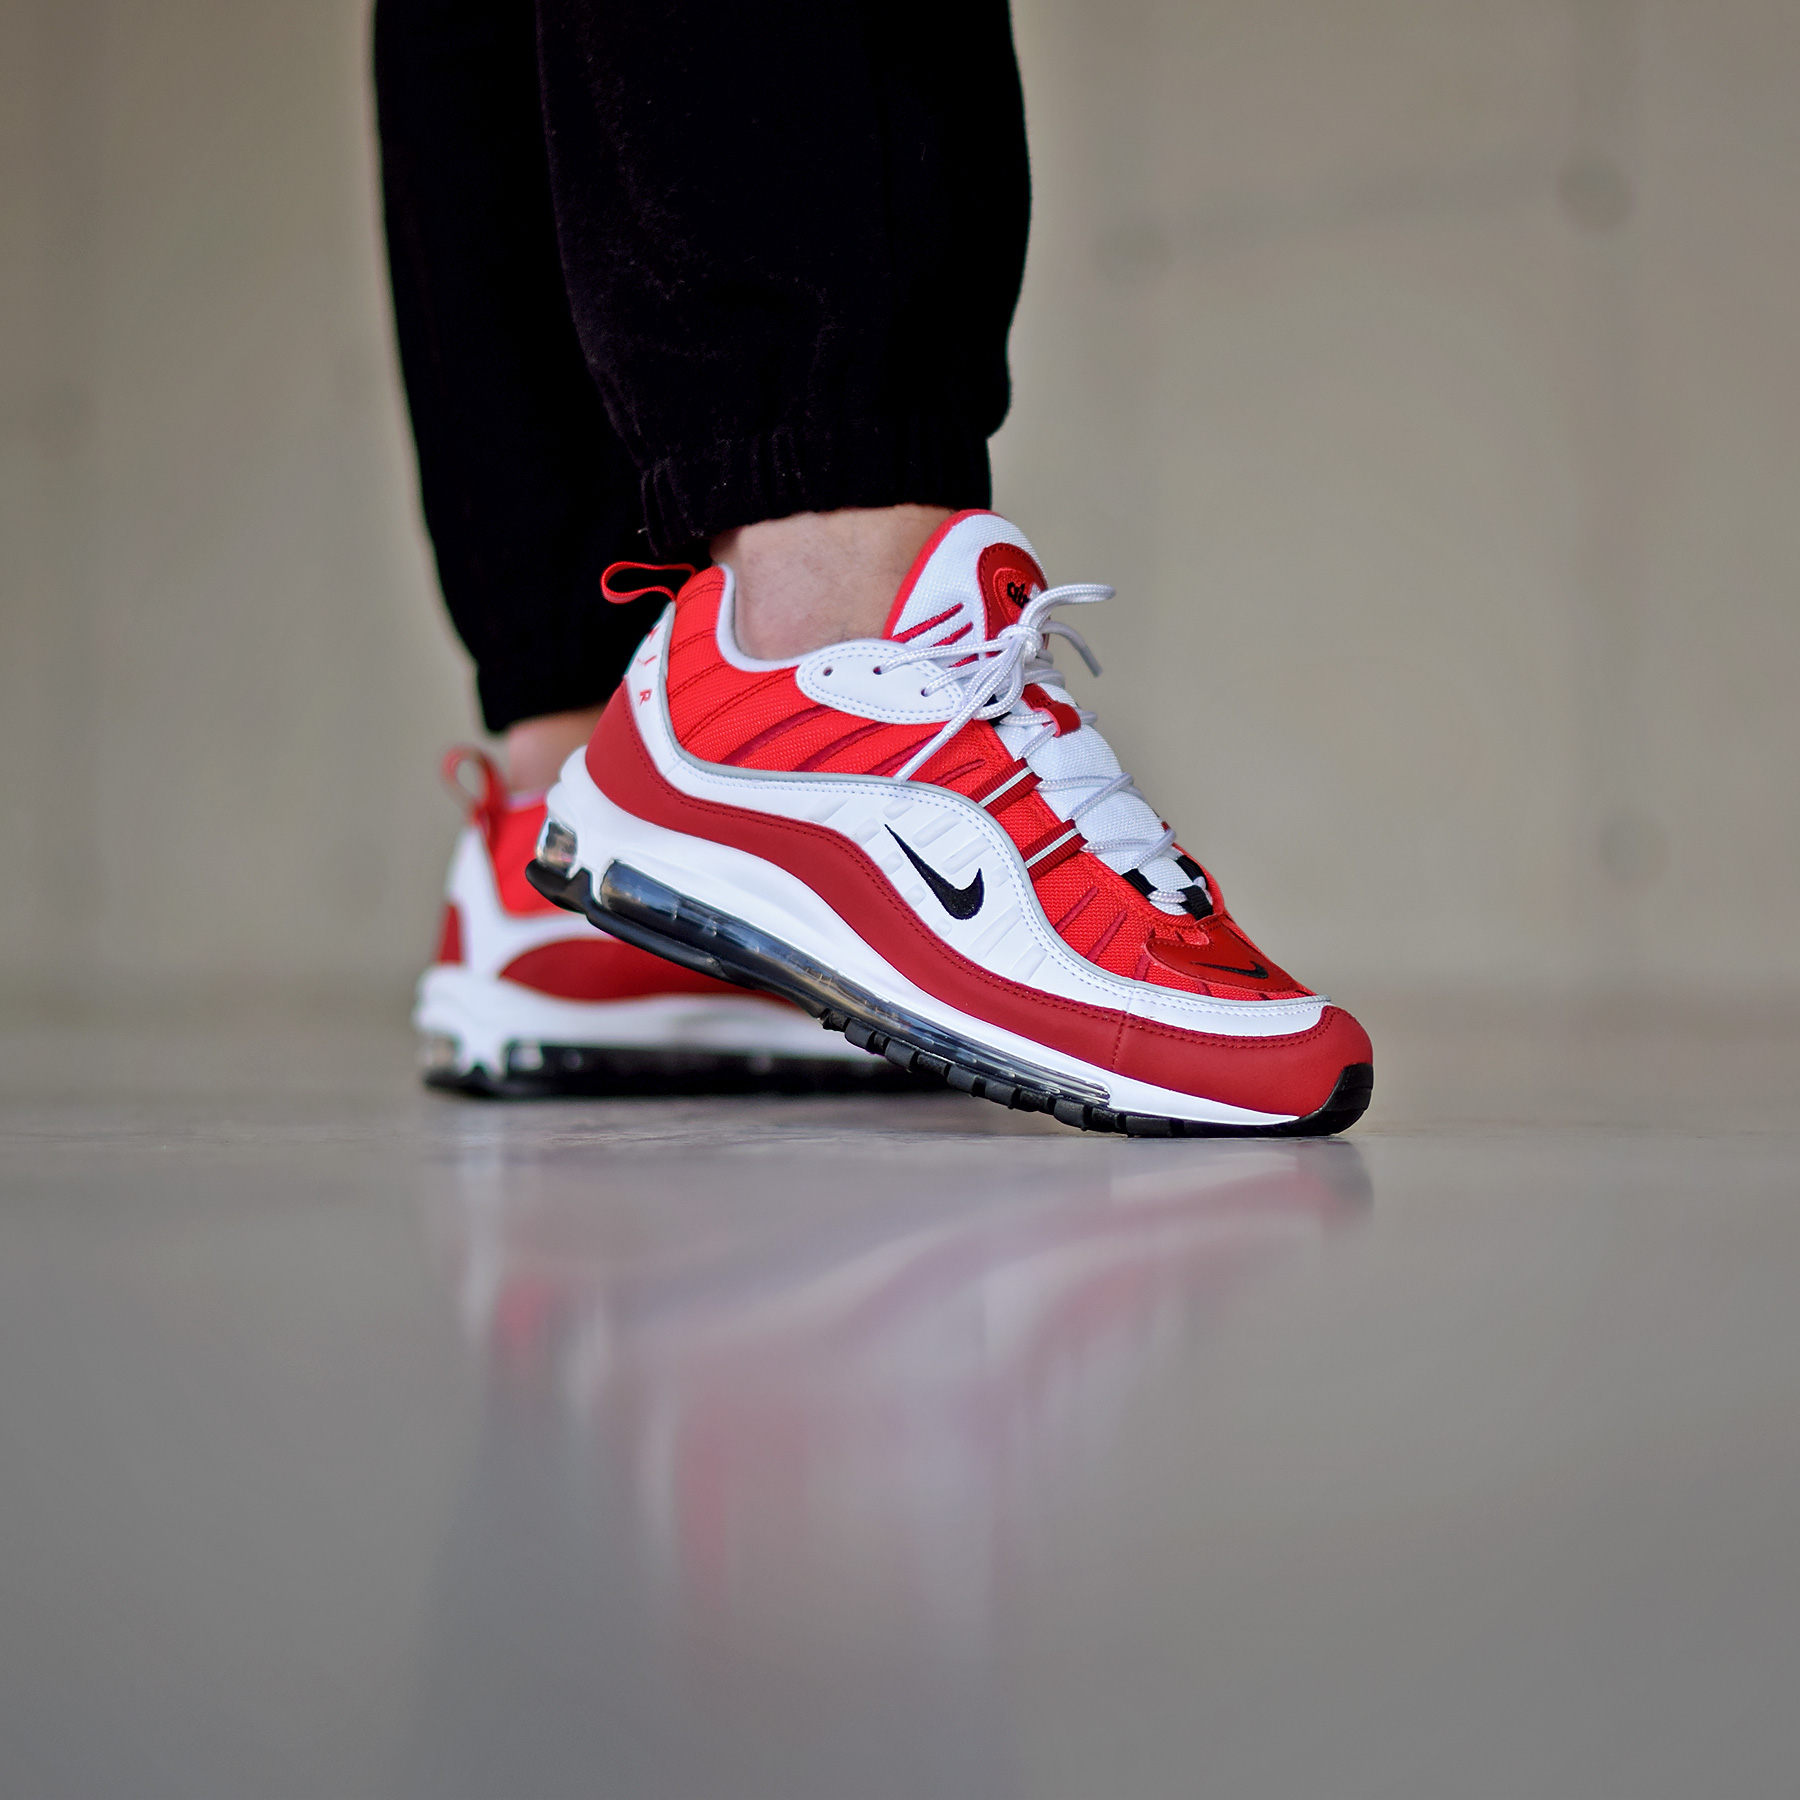 grossiste 8a8bd 9e067 Nike W Air Max 98 « Gym Red » - Sneakers.fr